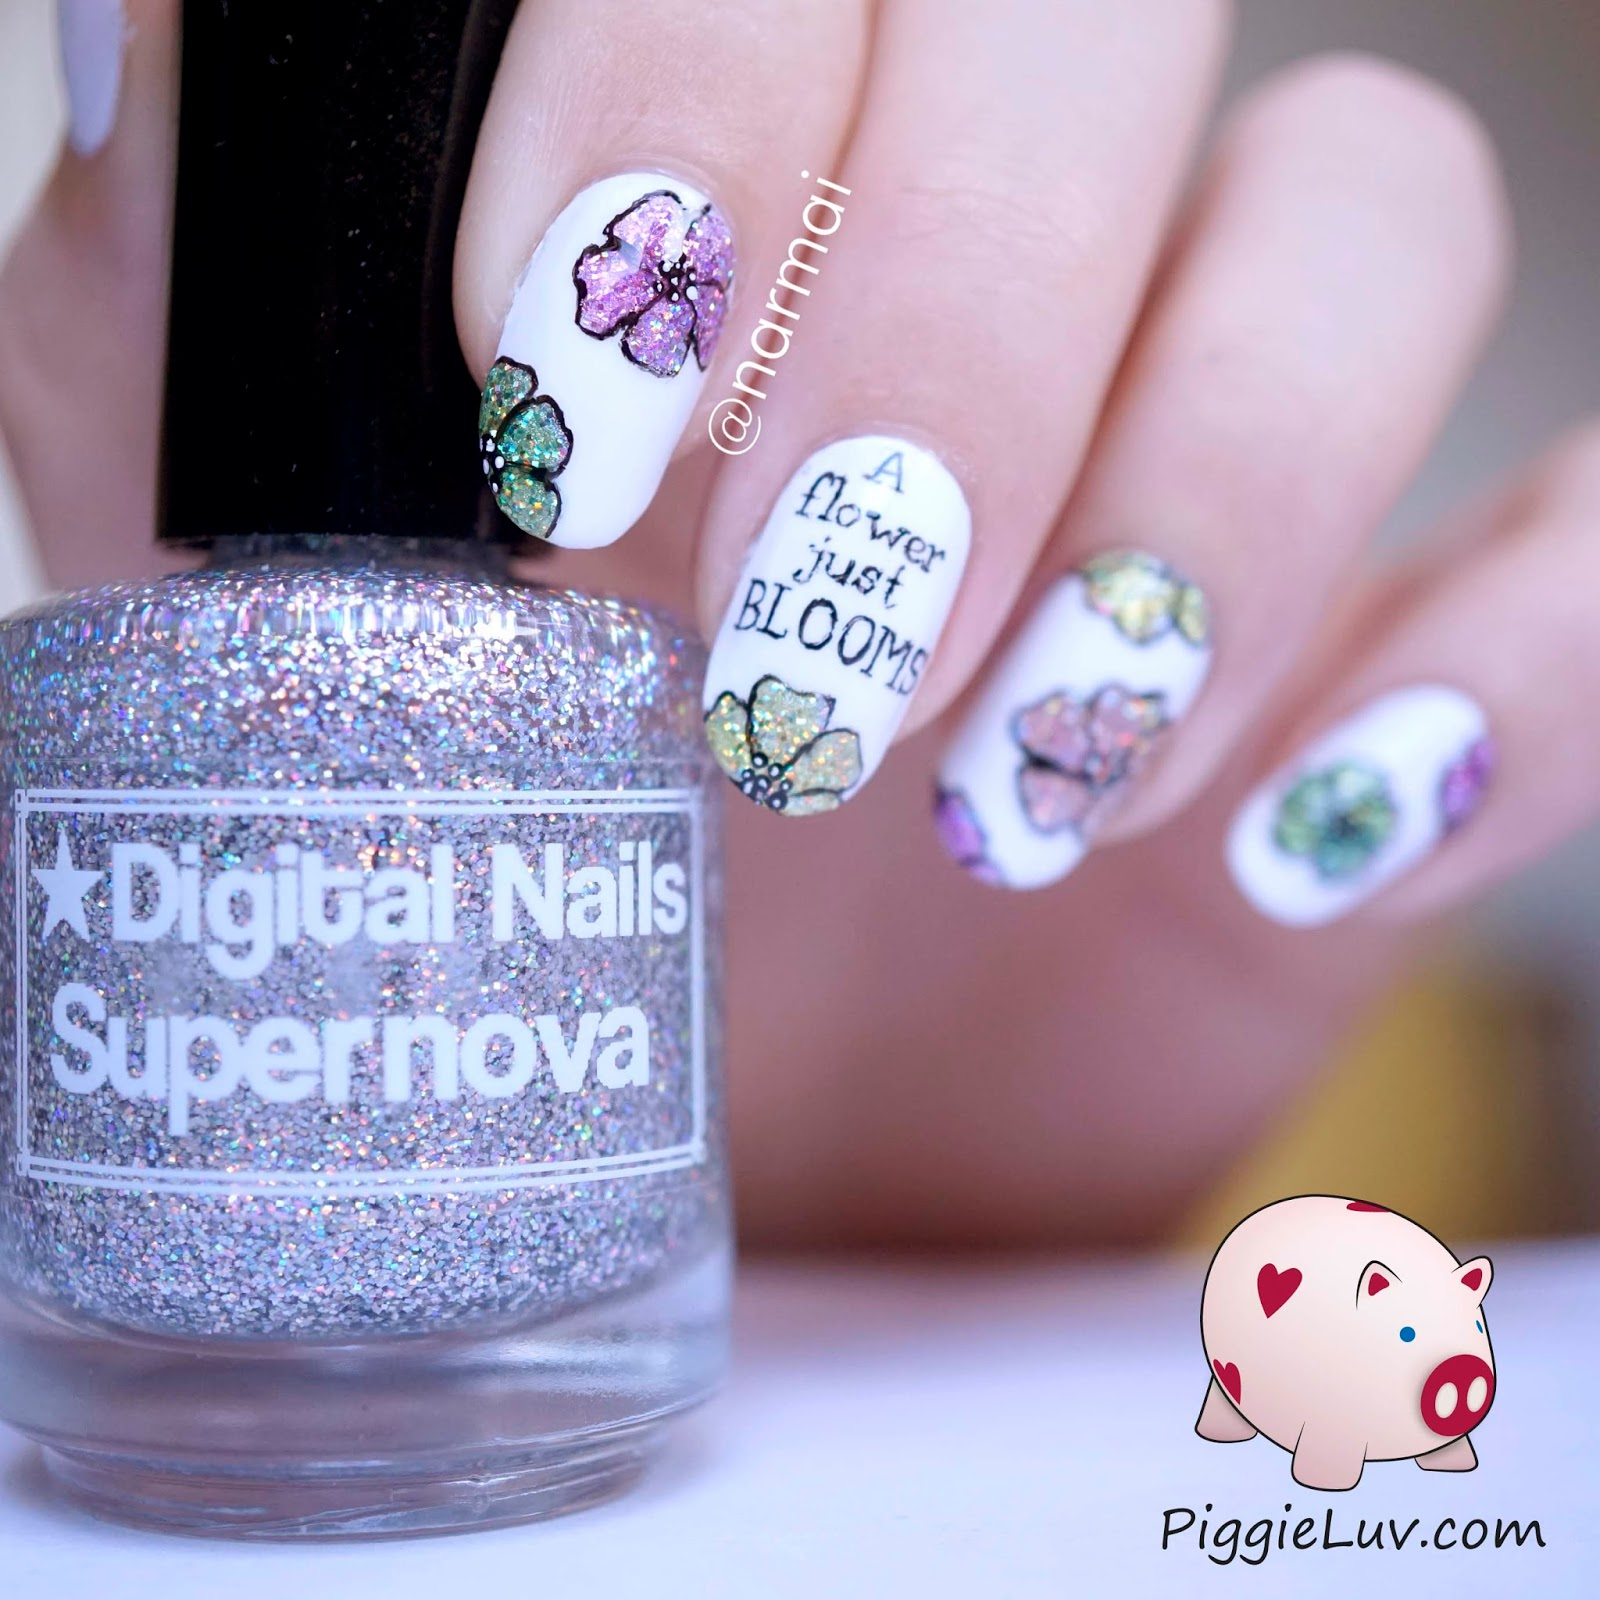 Totoro Nail Art Tutorial For The Glitter, I First Used Gosh Holographic  Hero To Make